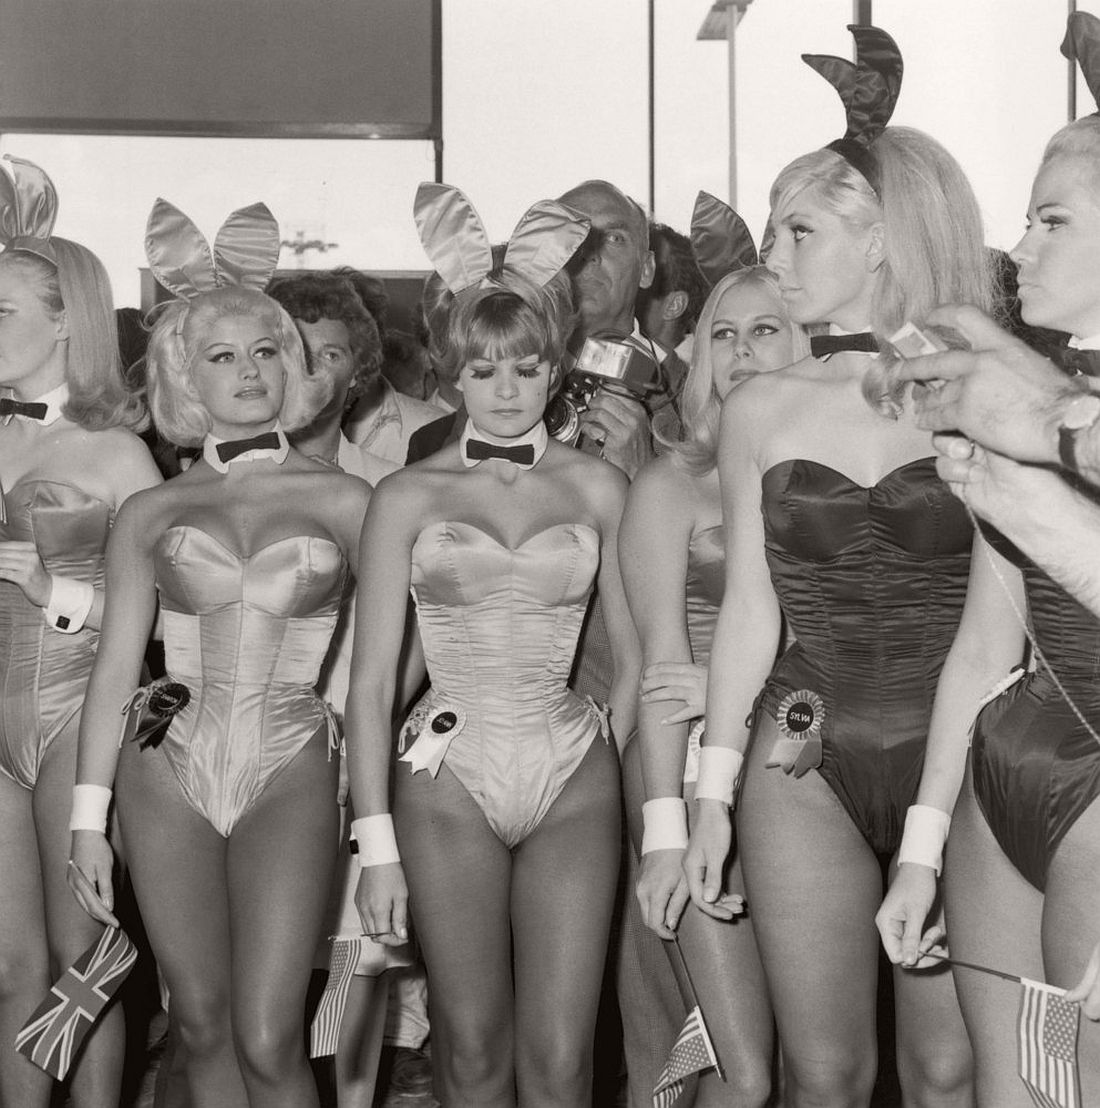 playboy-playmate-vintage-bunny-costumes-1960-past-11